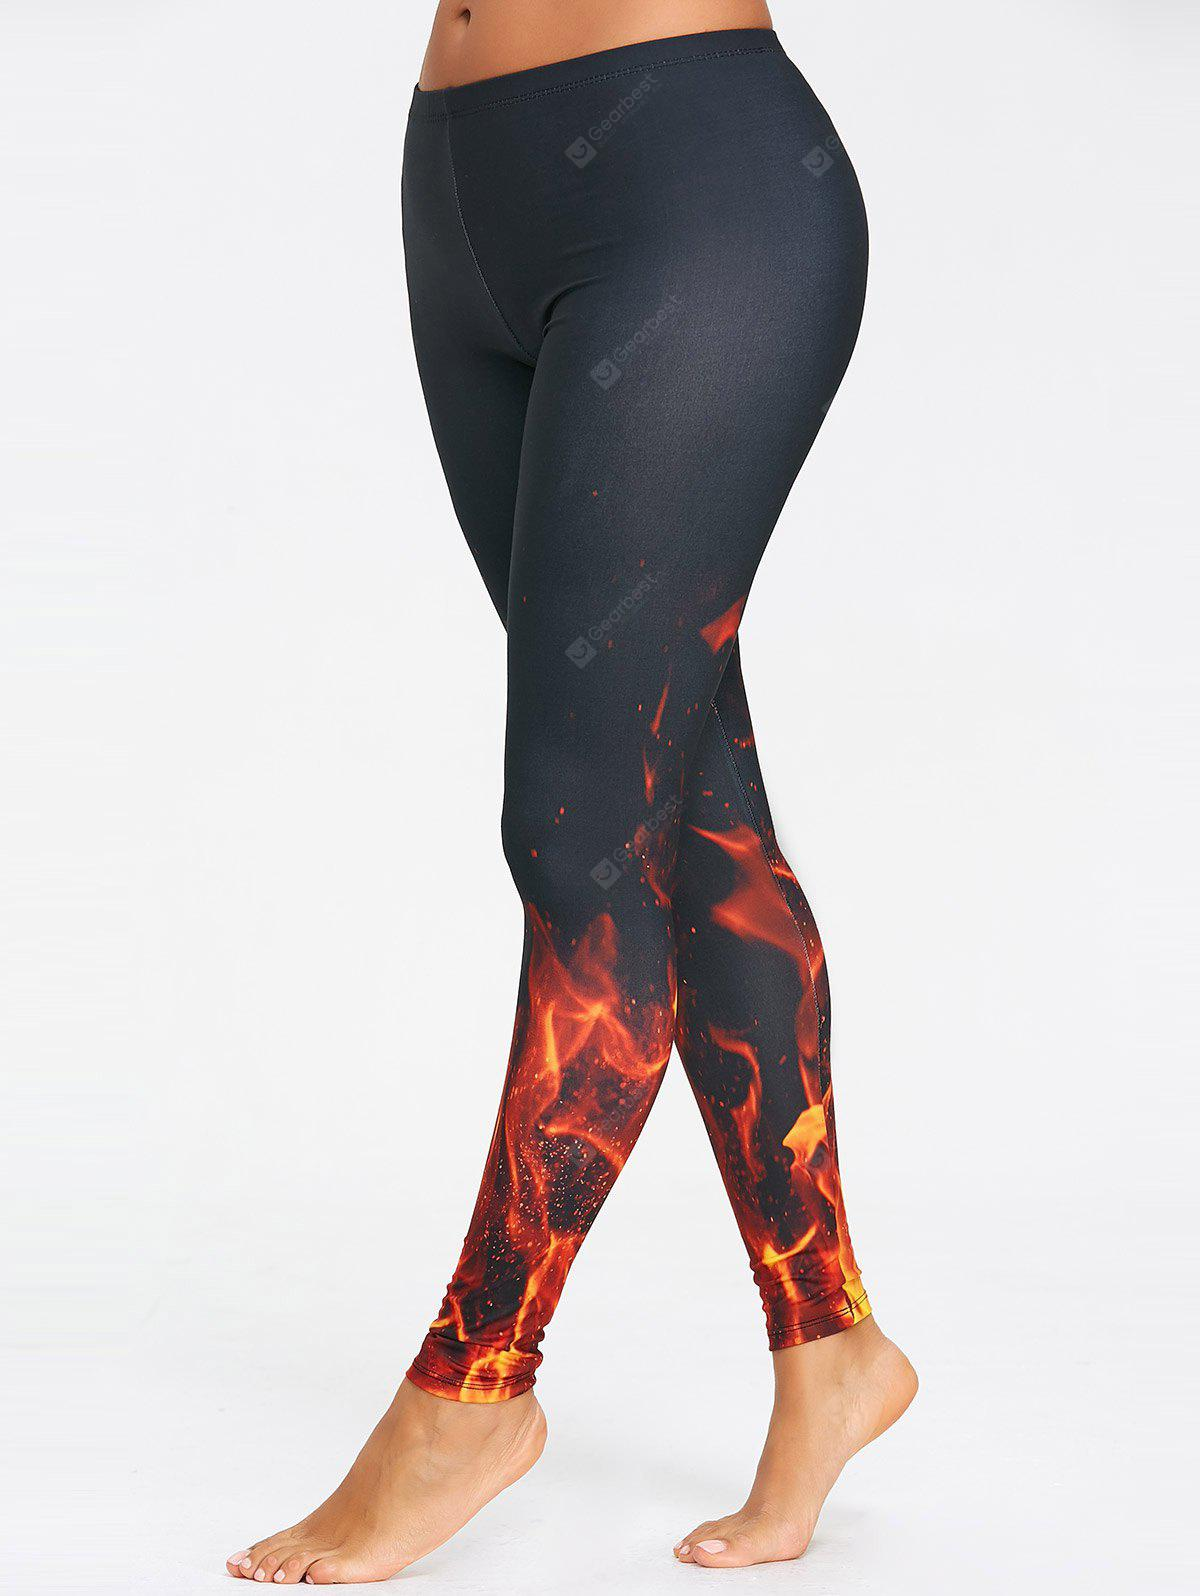 Fire 3D Printed Workout Leggings